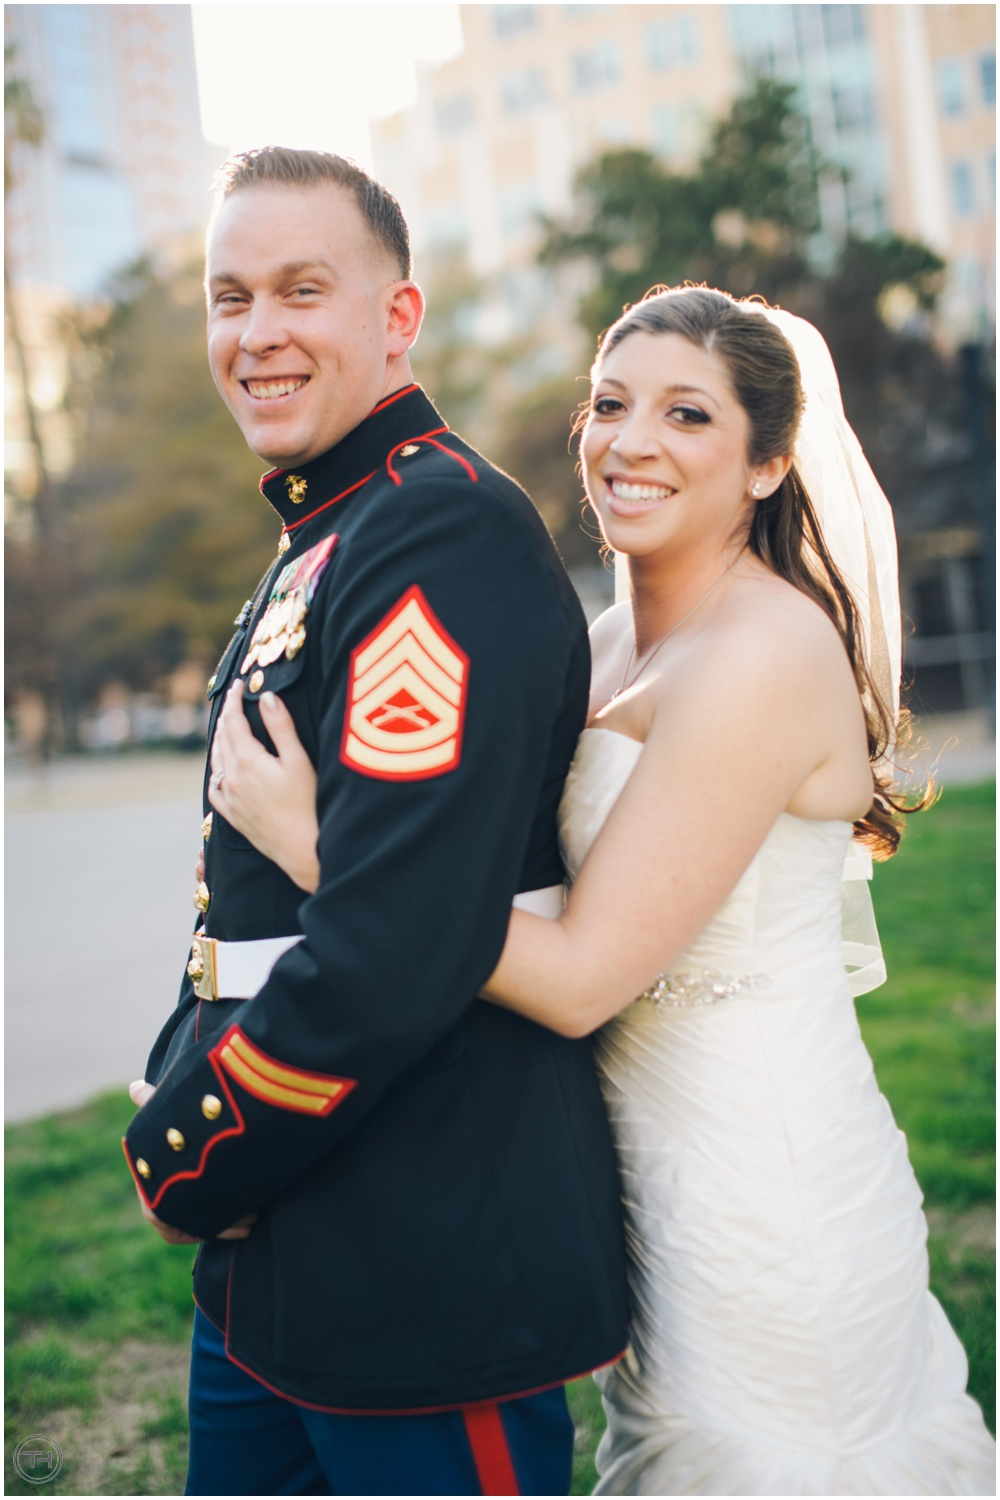 Thomas Julianna Military Wedding Photographer 32.jpg